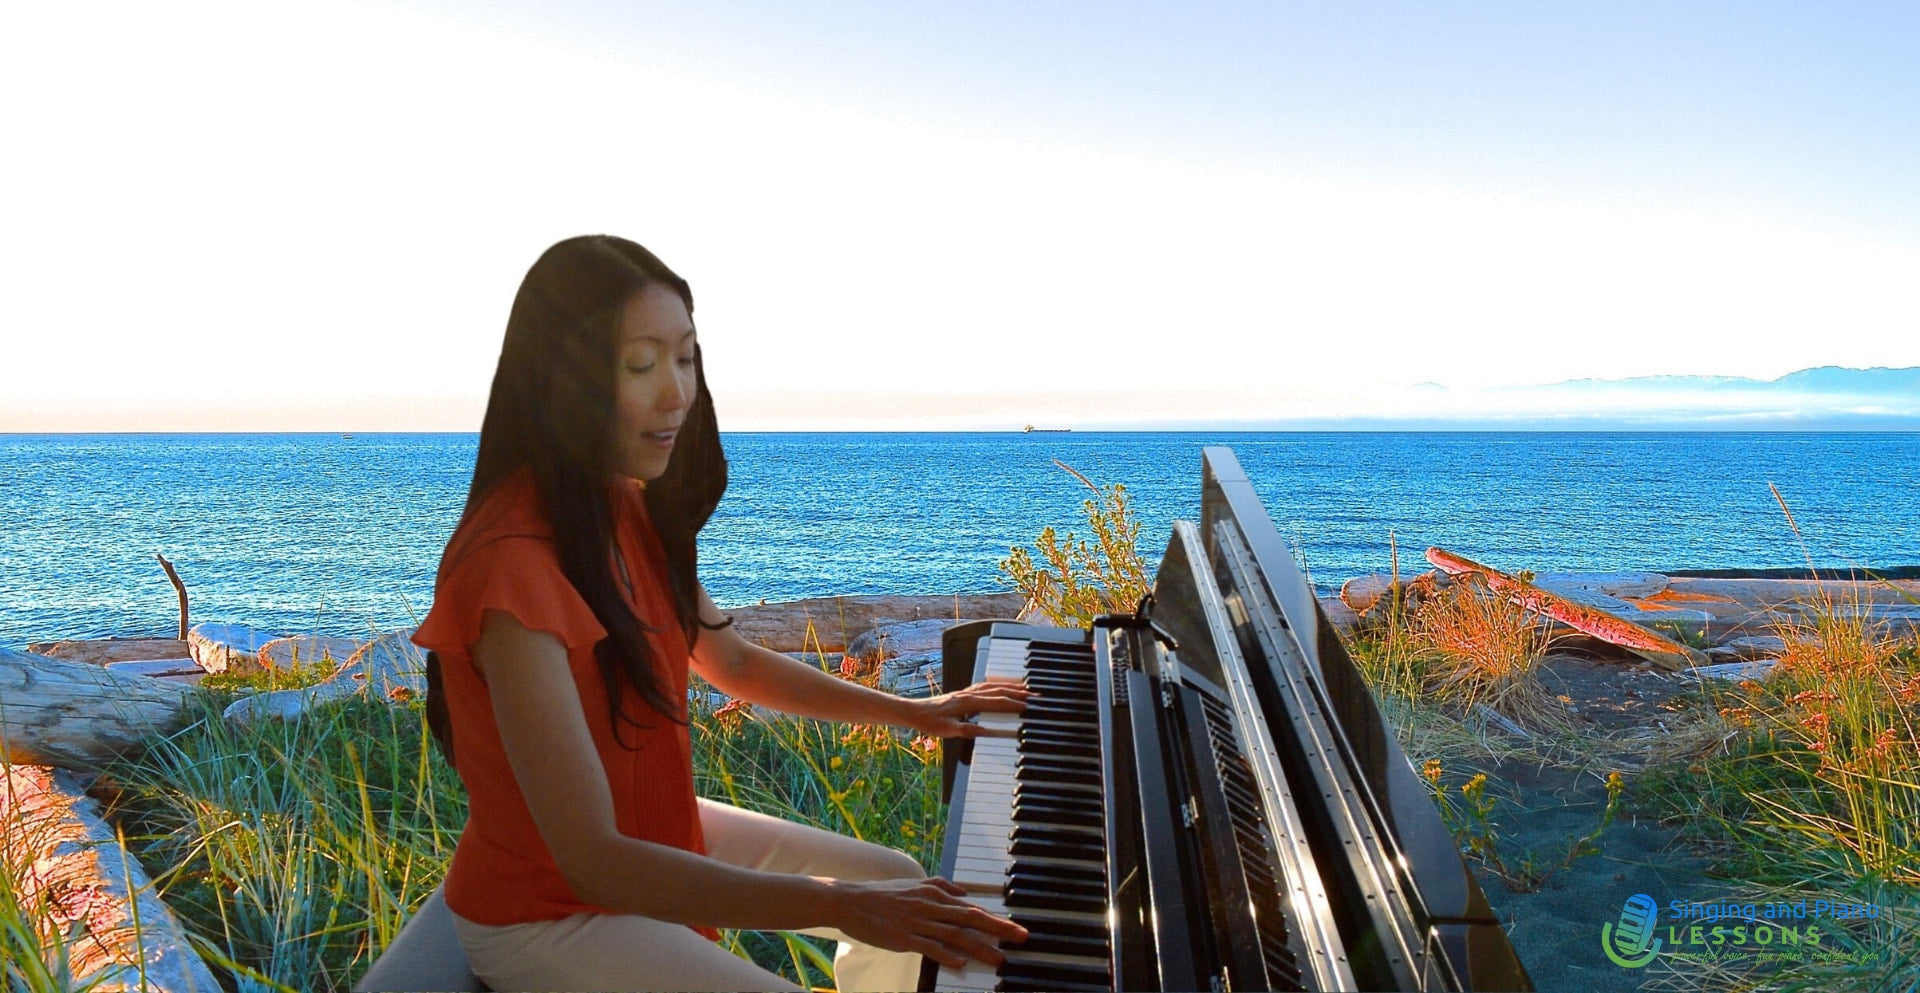 Studio Lessons - Singing and Piano Lessons